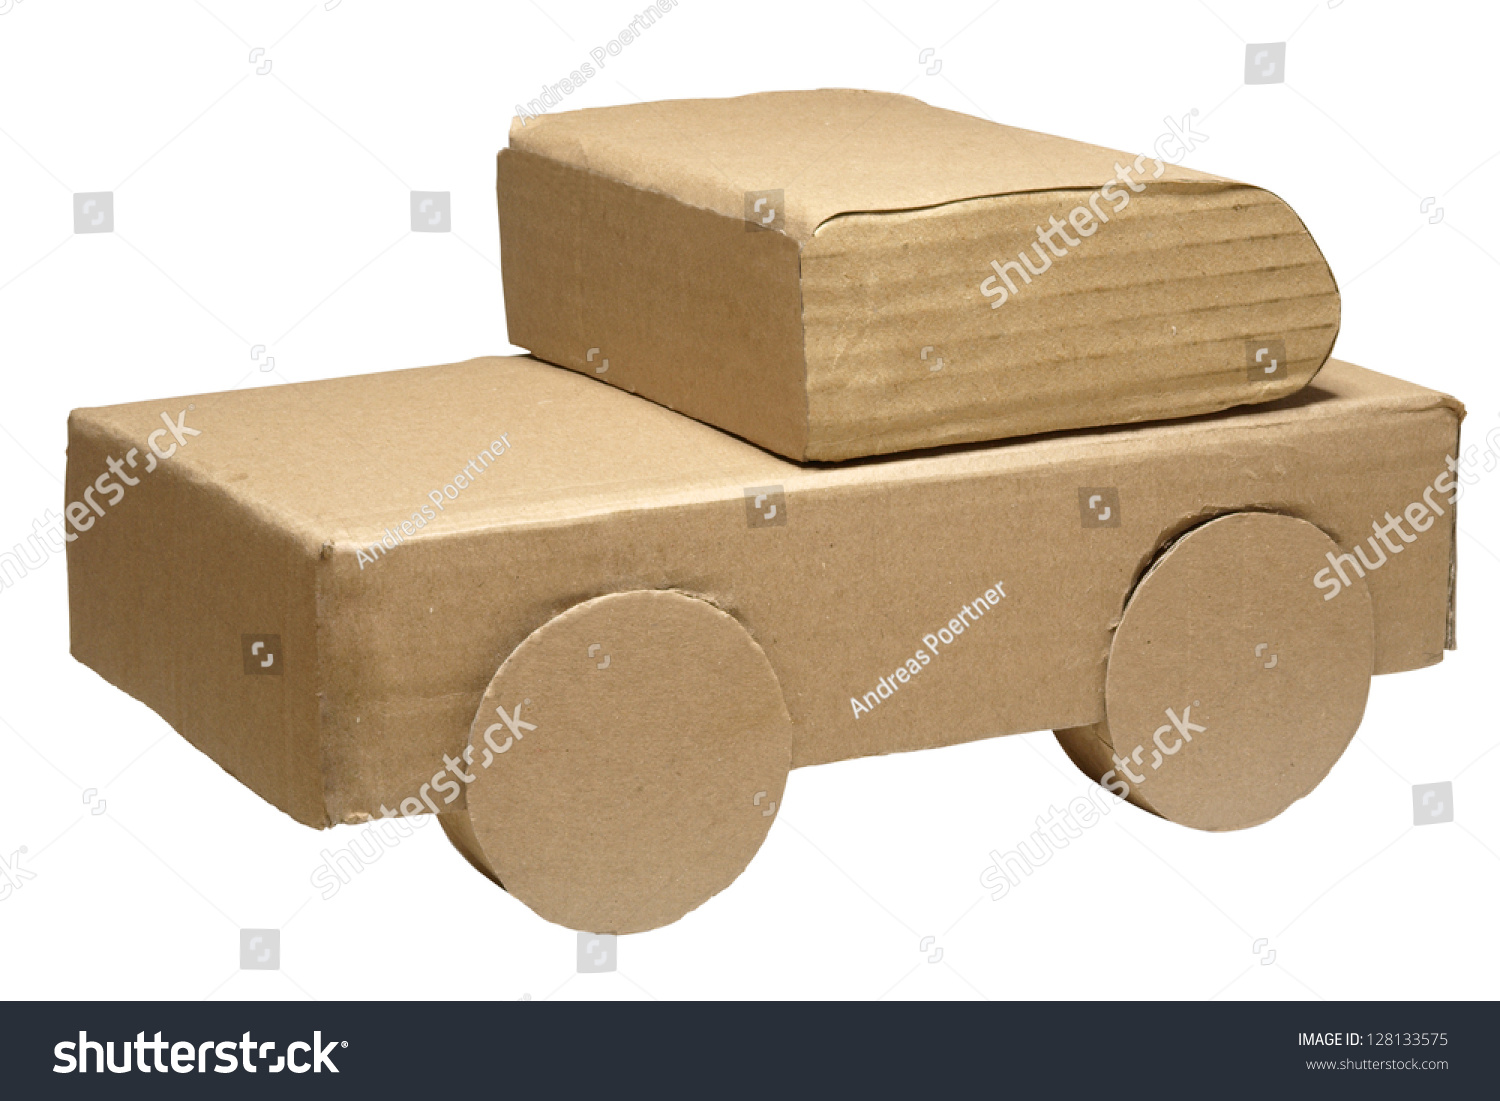 handmade insurance handmade car model concept car stock photo 2591